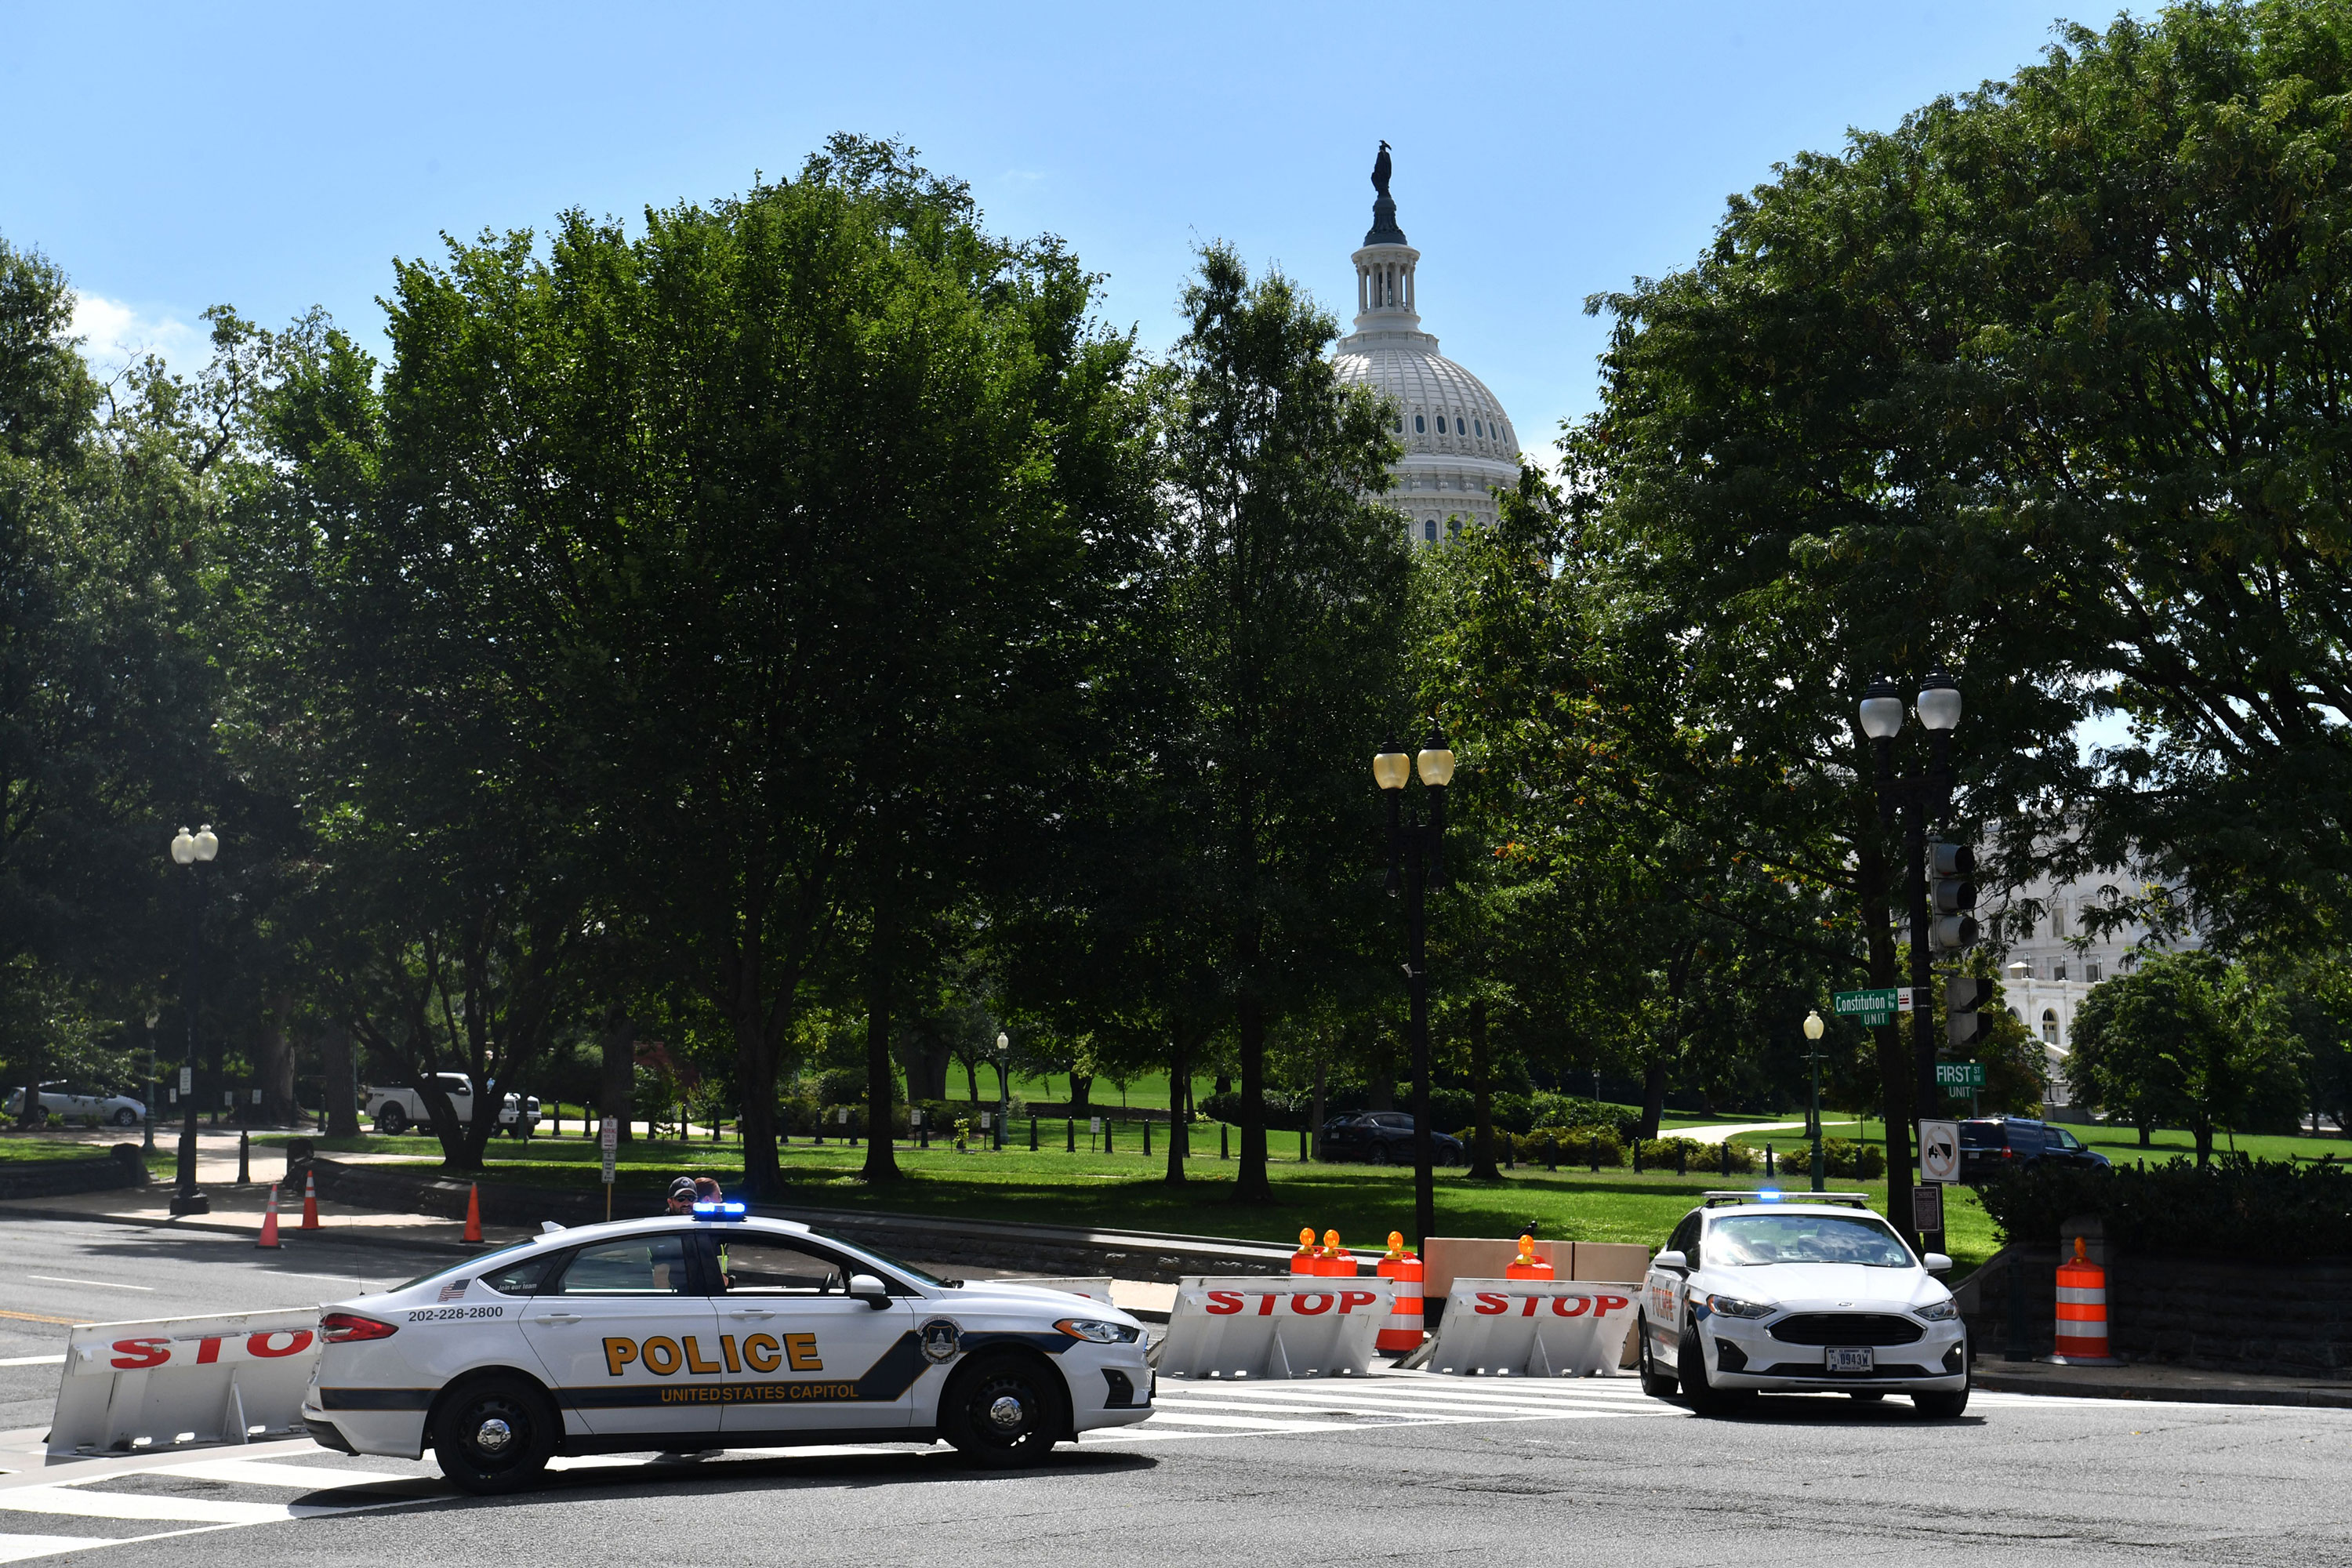 US Capitol police block a street near the Capitol and Library of Congress on August 19.